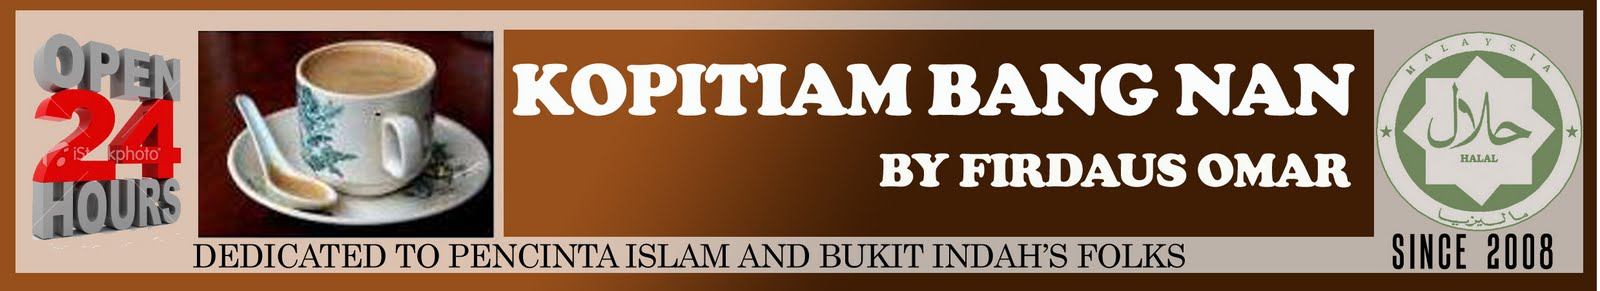 Kopitiam Bang Nan